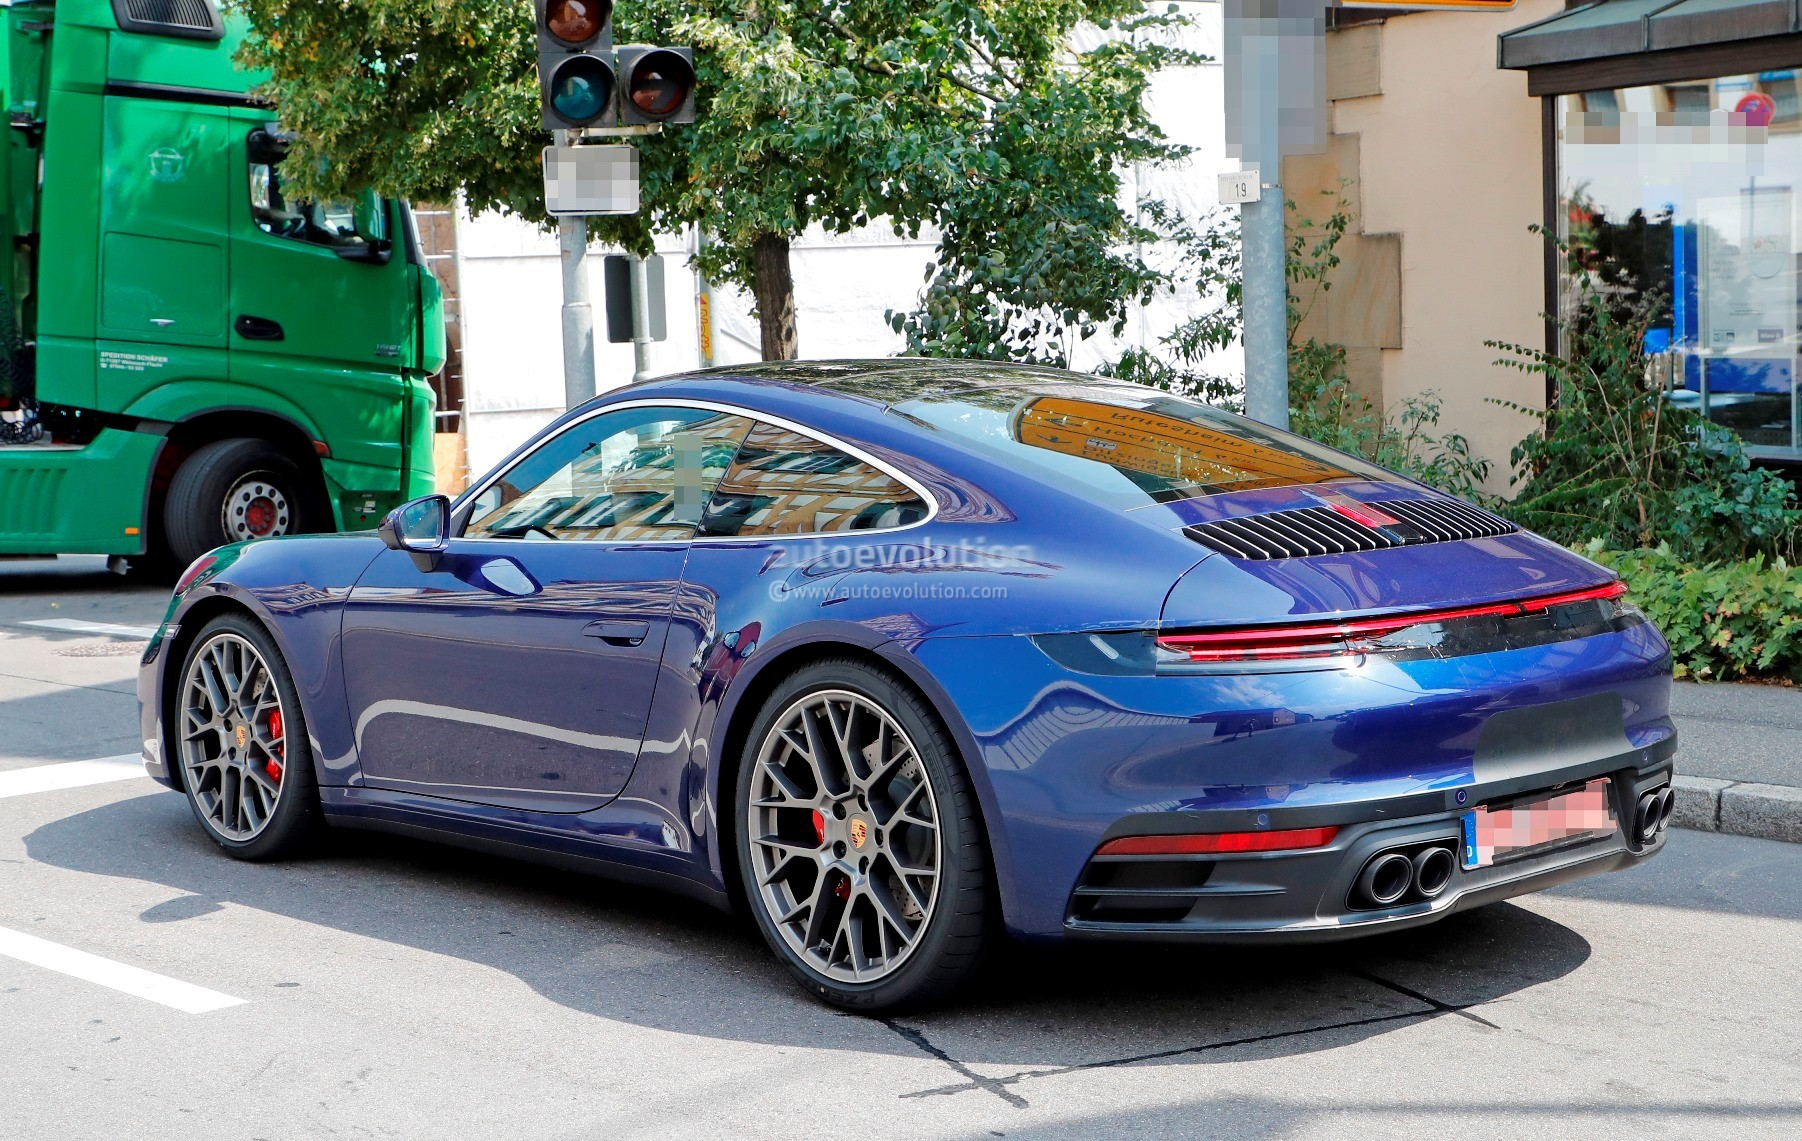 Auto Auction Texas >> New Porsche 911 (992) Spotted on German Autobahn, Shows Widebody Look - autoevolution